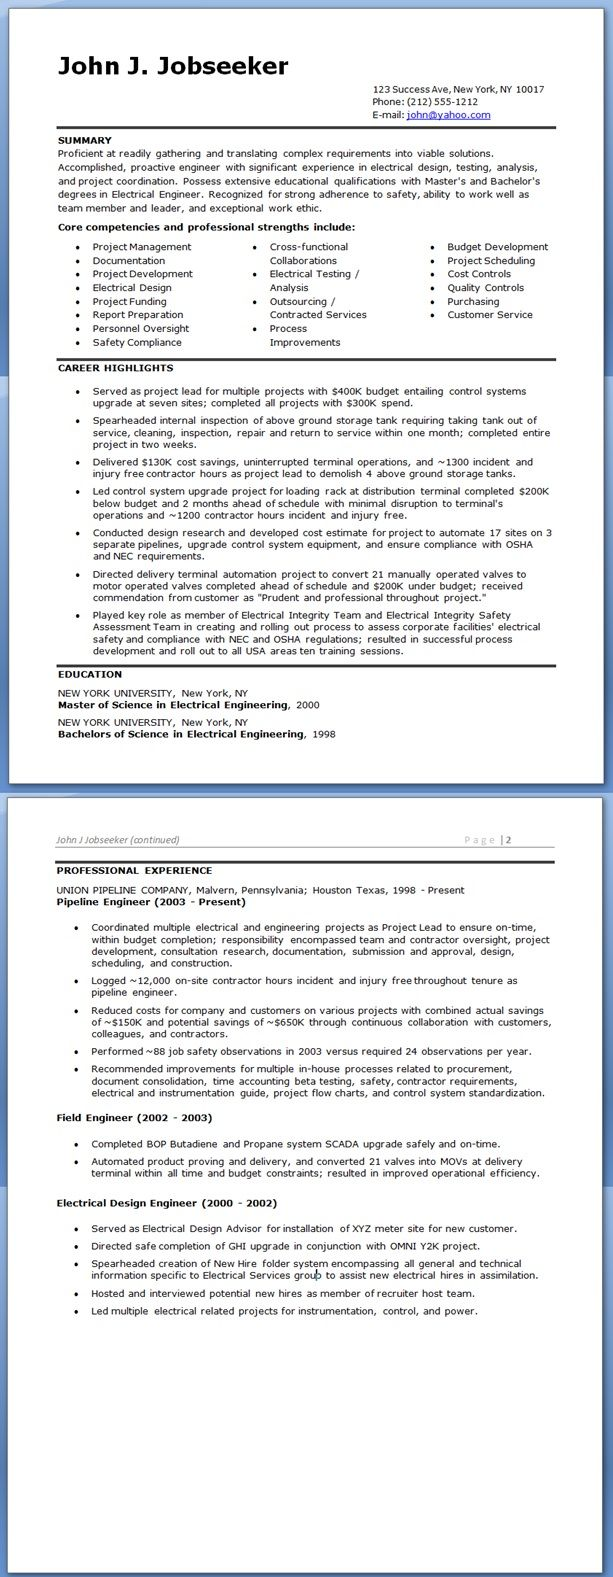 electrical engineer resume sample doc experienced - Best Resume Samples For Experienced Engineers